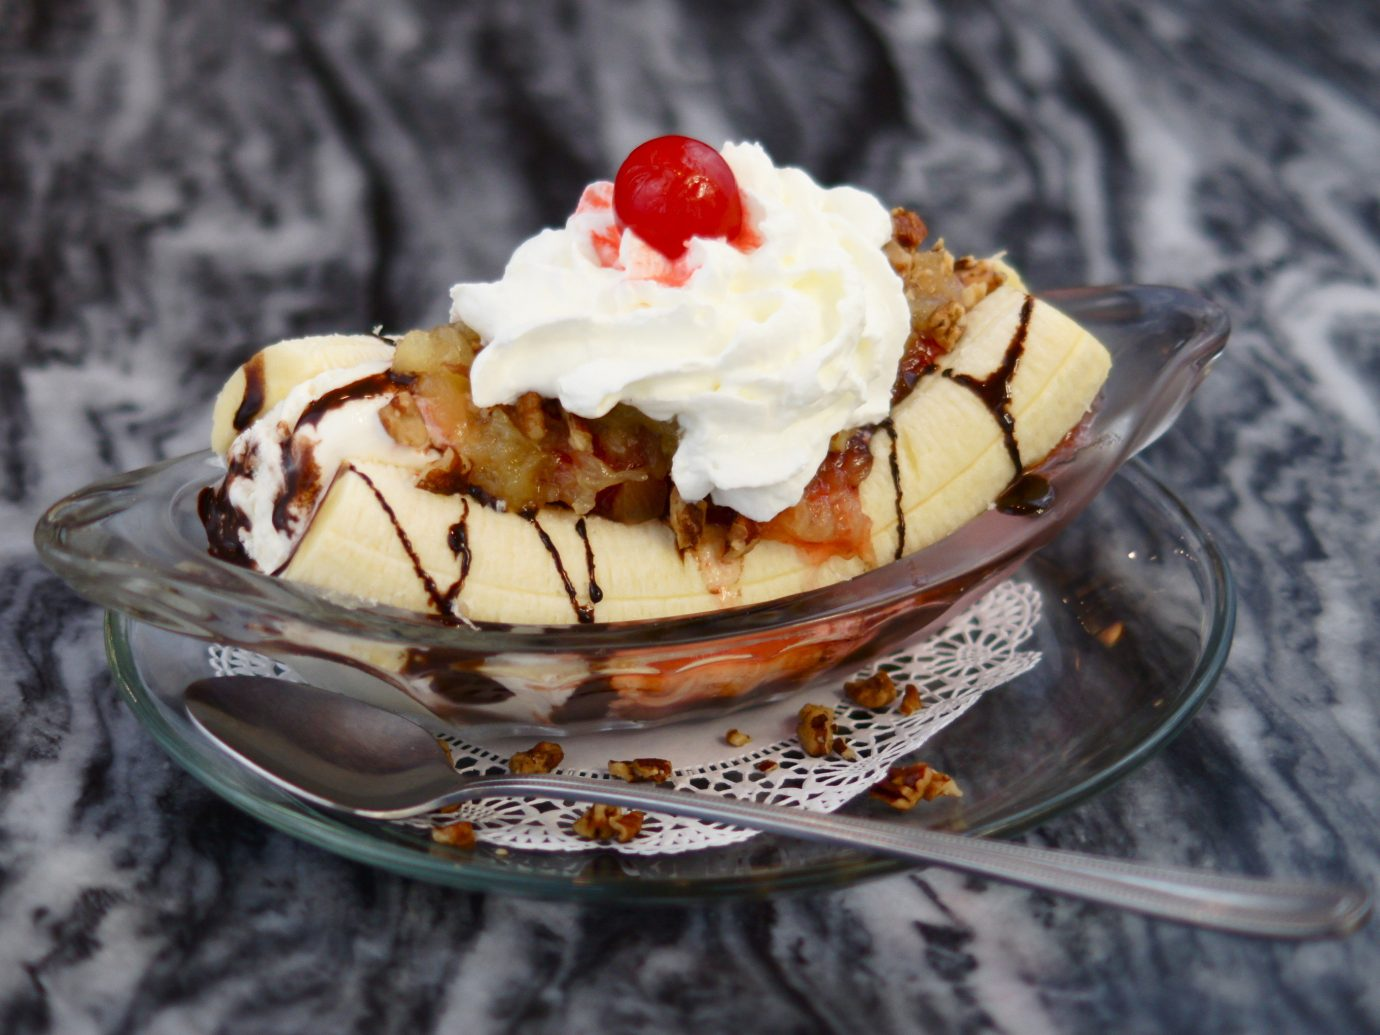 Food + Drink cake food dessert cream ice cream piece sundae frozen dessert whipped cream ice dairy product dish dame blanche slice toppings flavor pudding